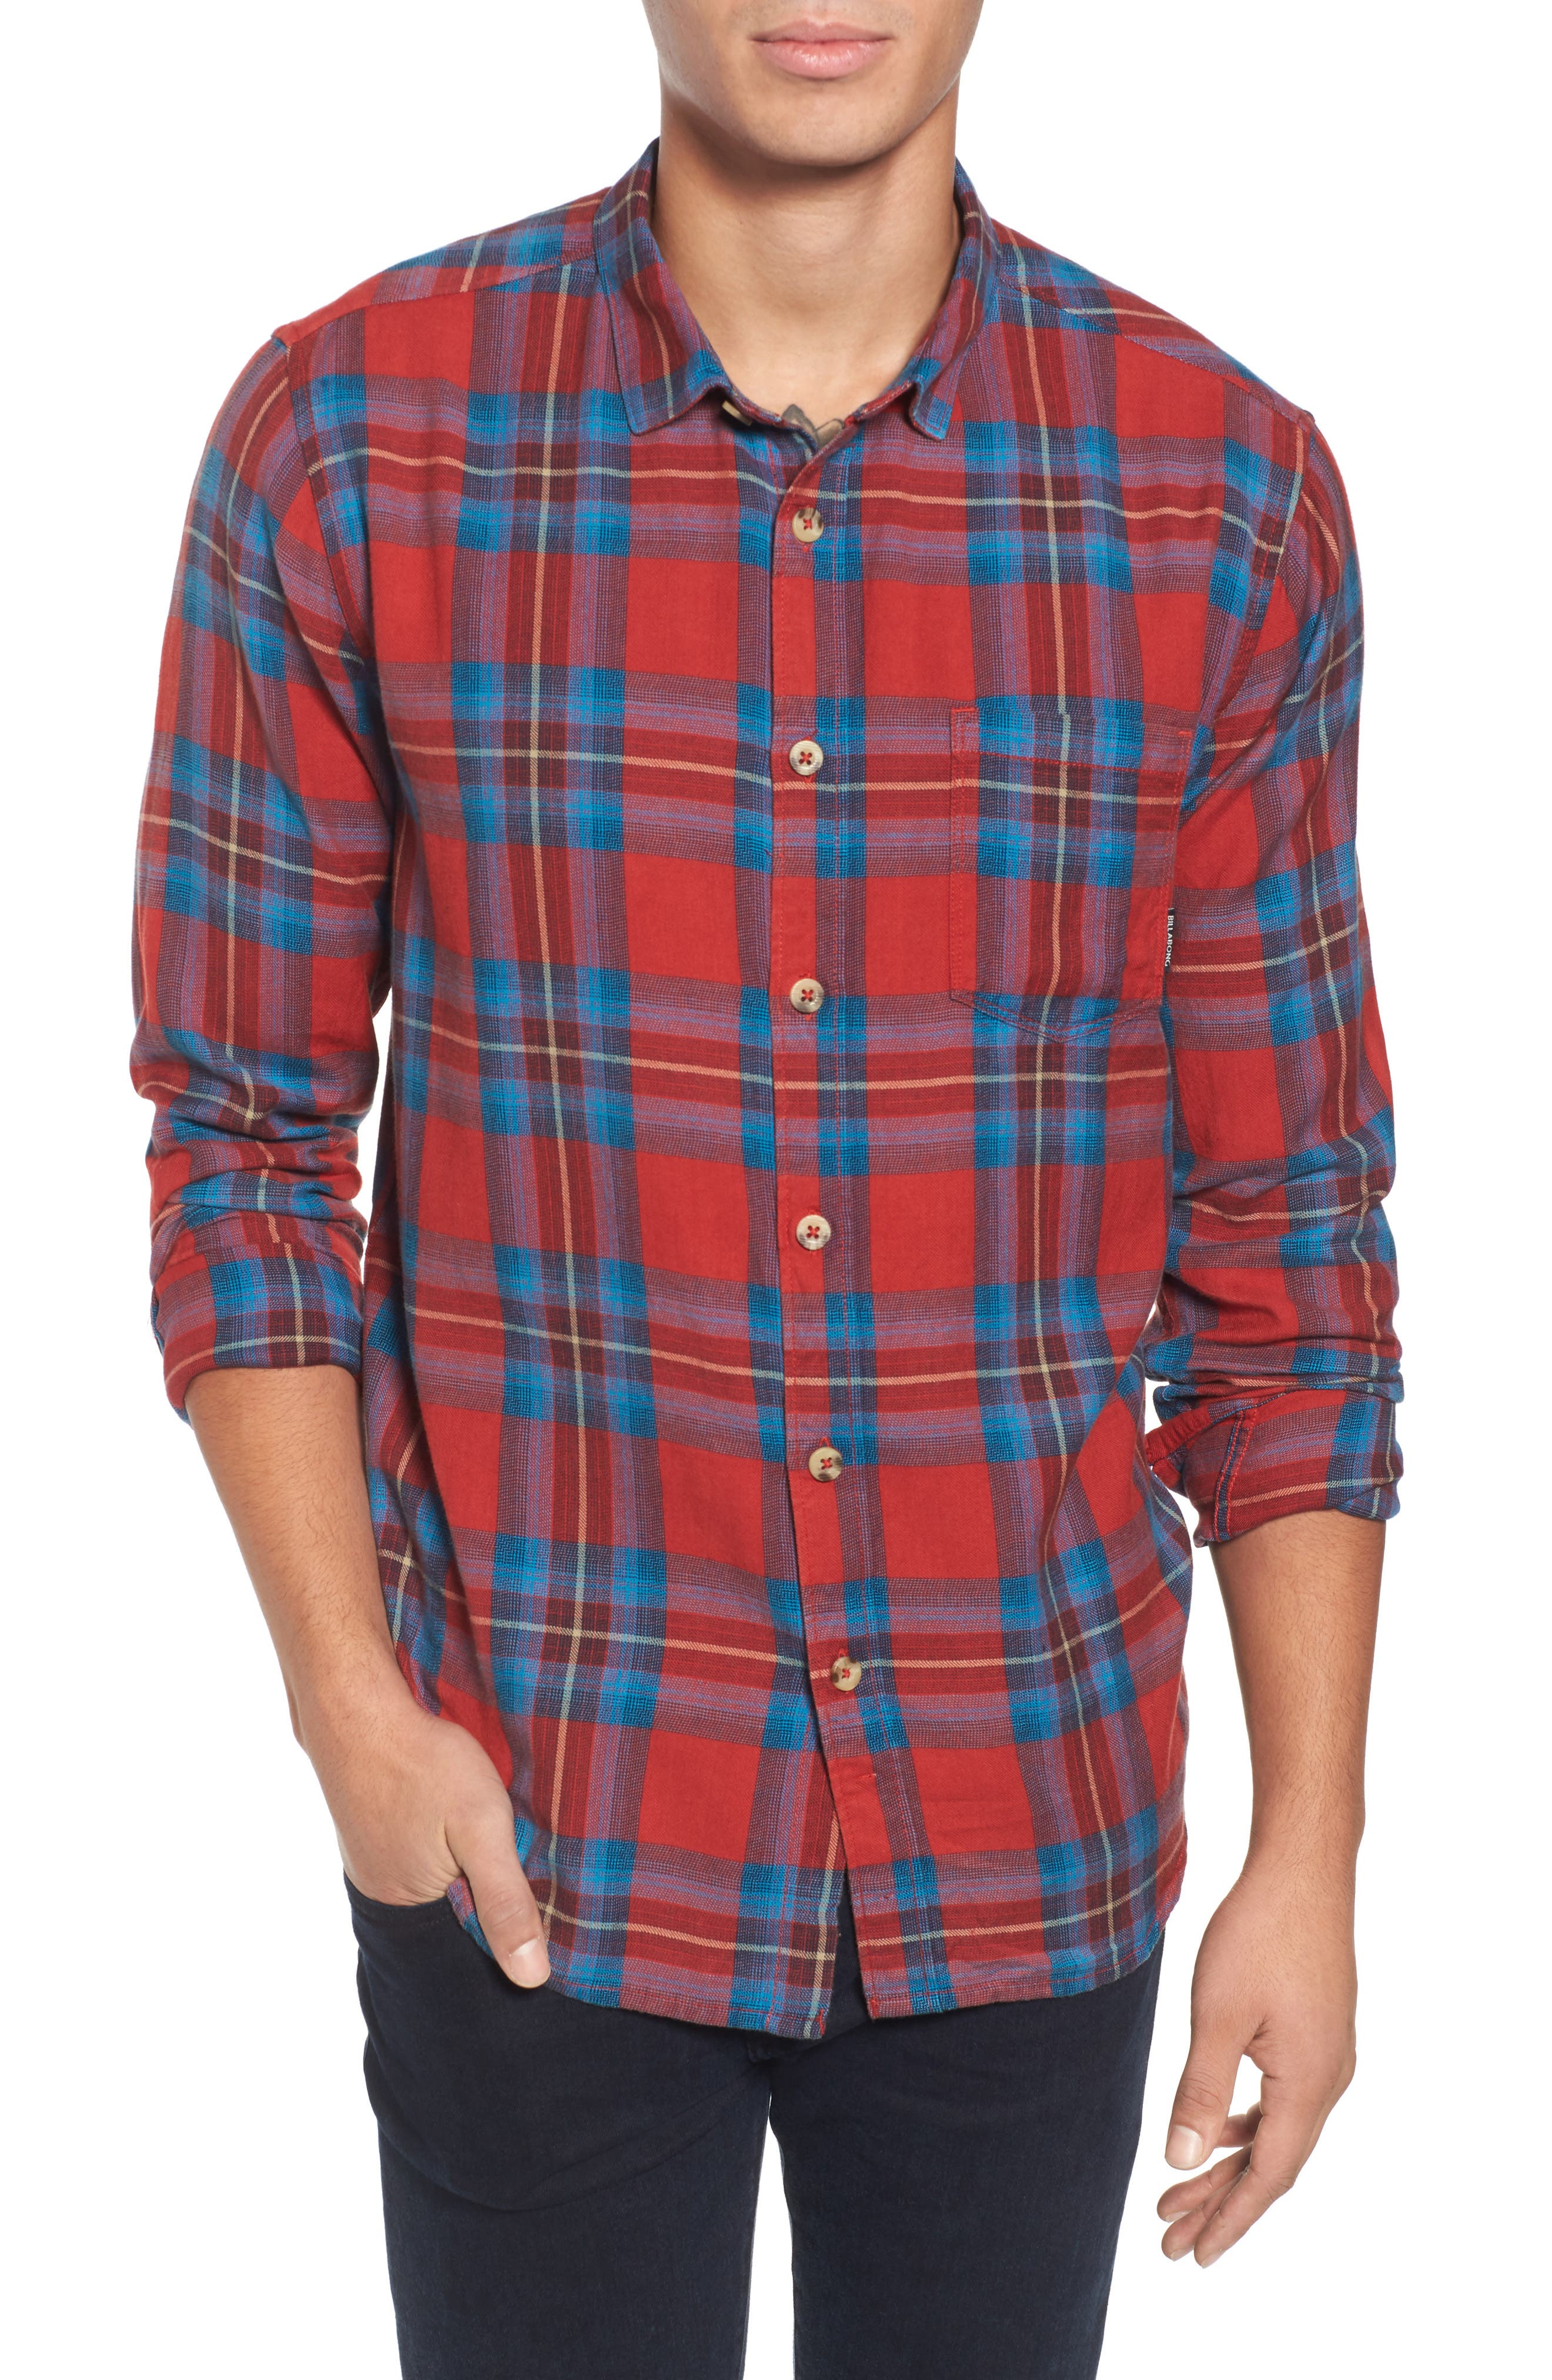 Freemont Flannel Shirt,                             Main thumbnail 1, color,                             Red